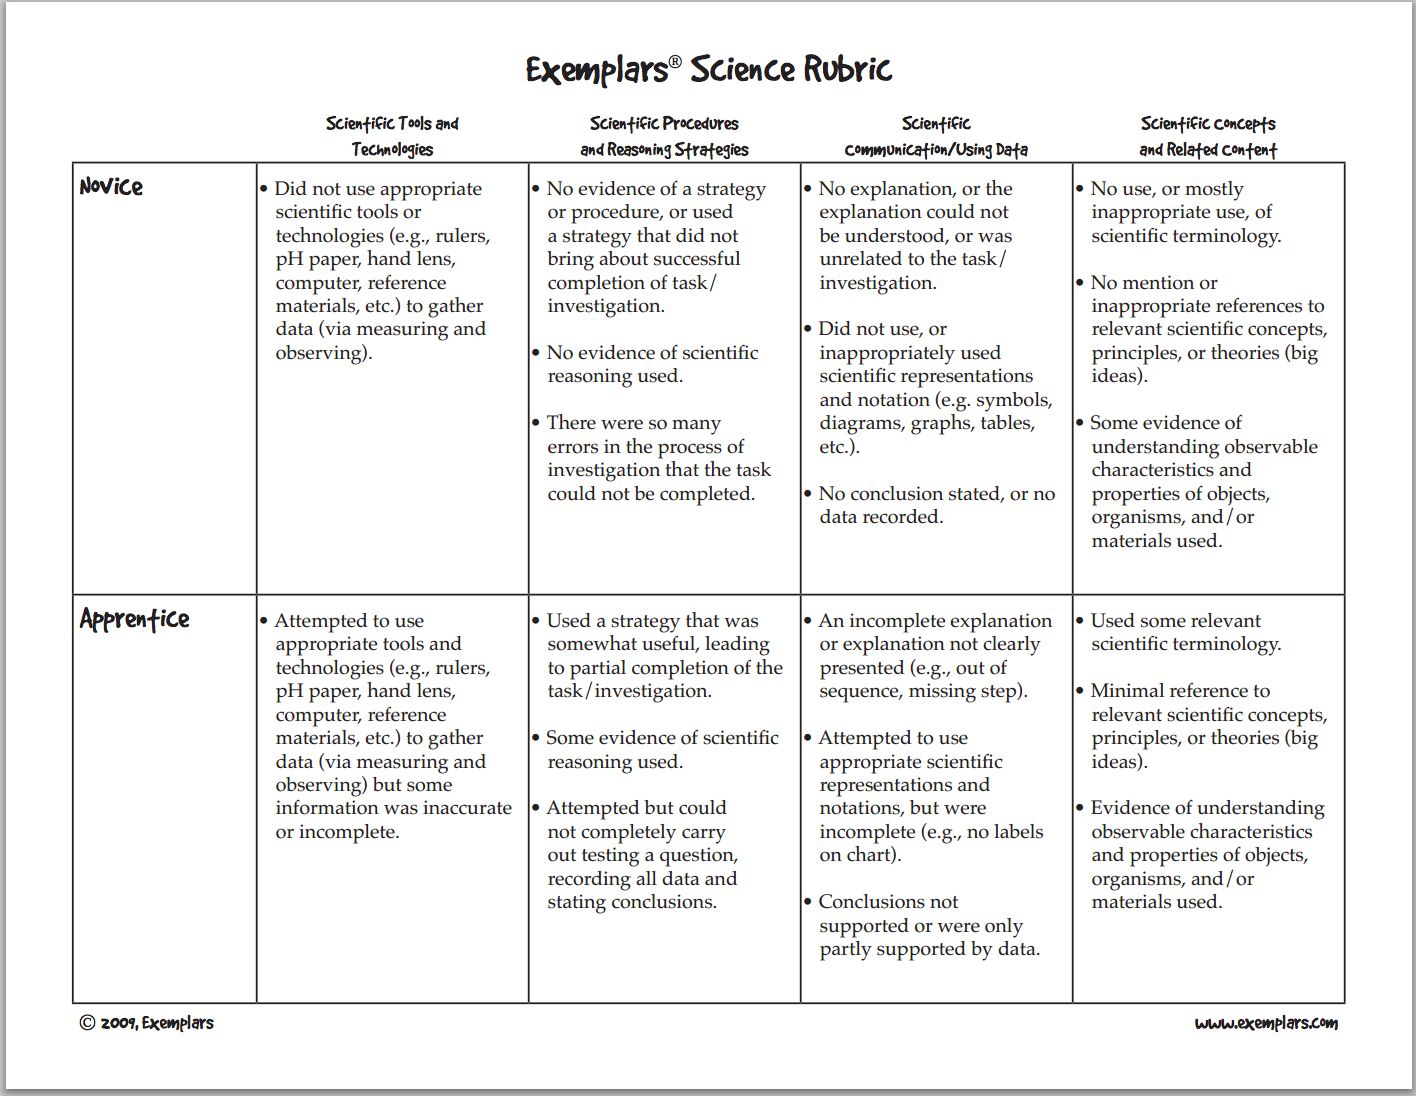 rubric for science fair research paper Rubric for science fair research paper share sign in the version of the browser you are using is no longer supported please upgrade to a supported browserdismiss file edit view tools help.